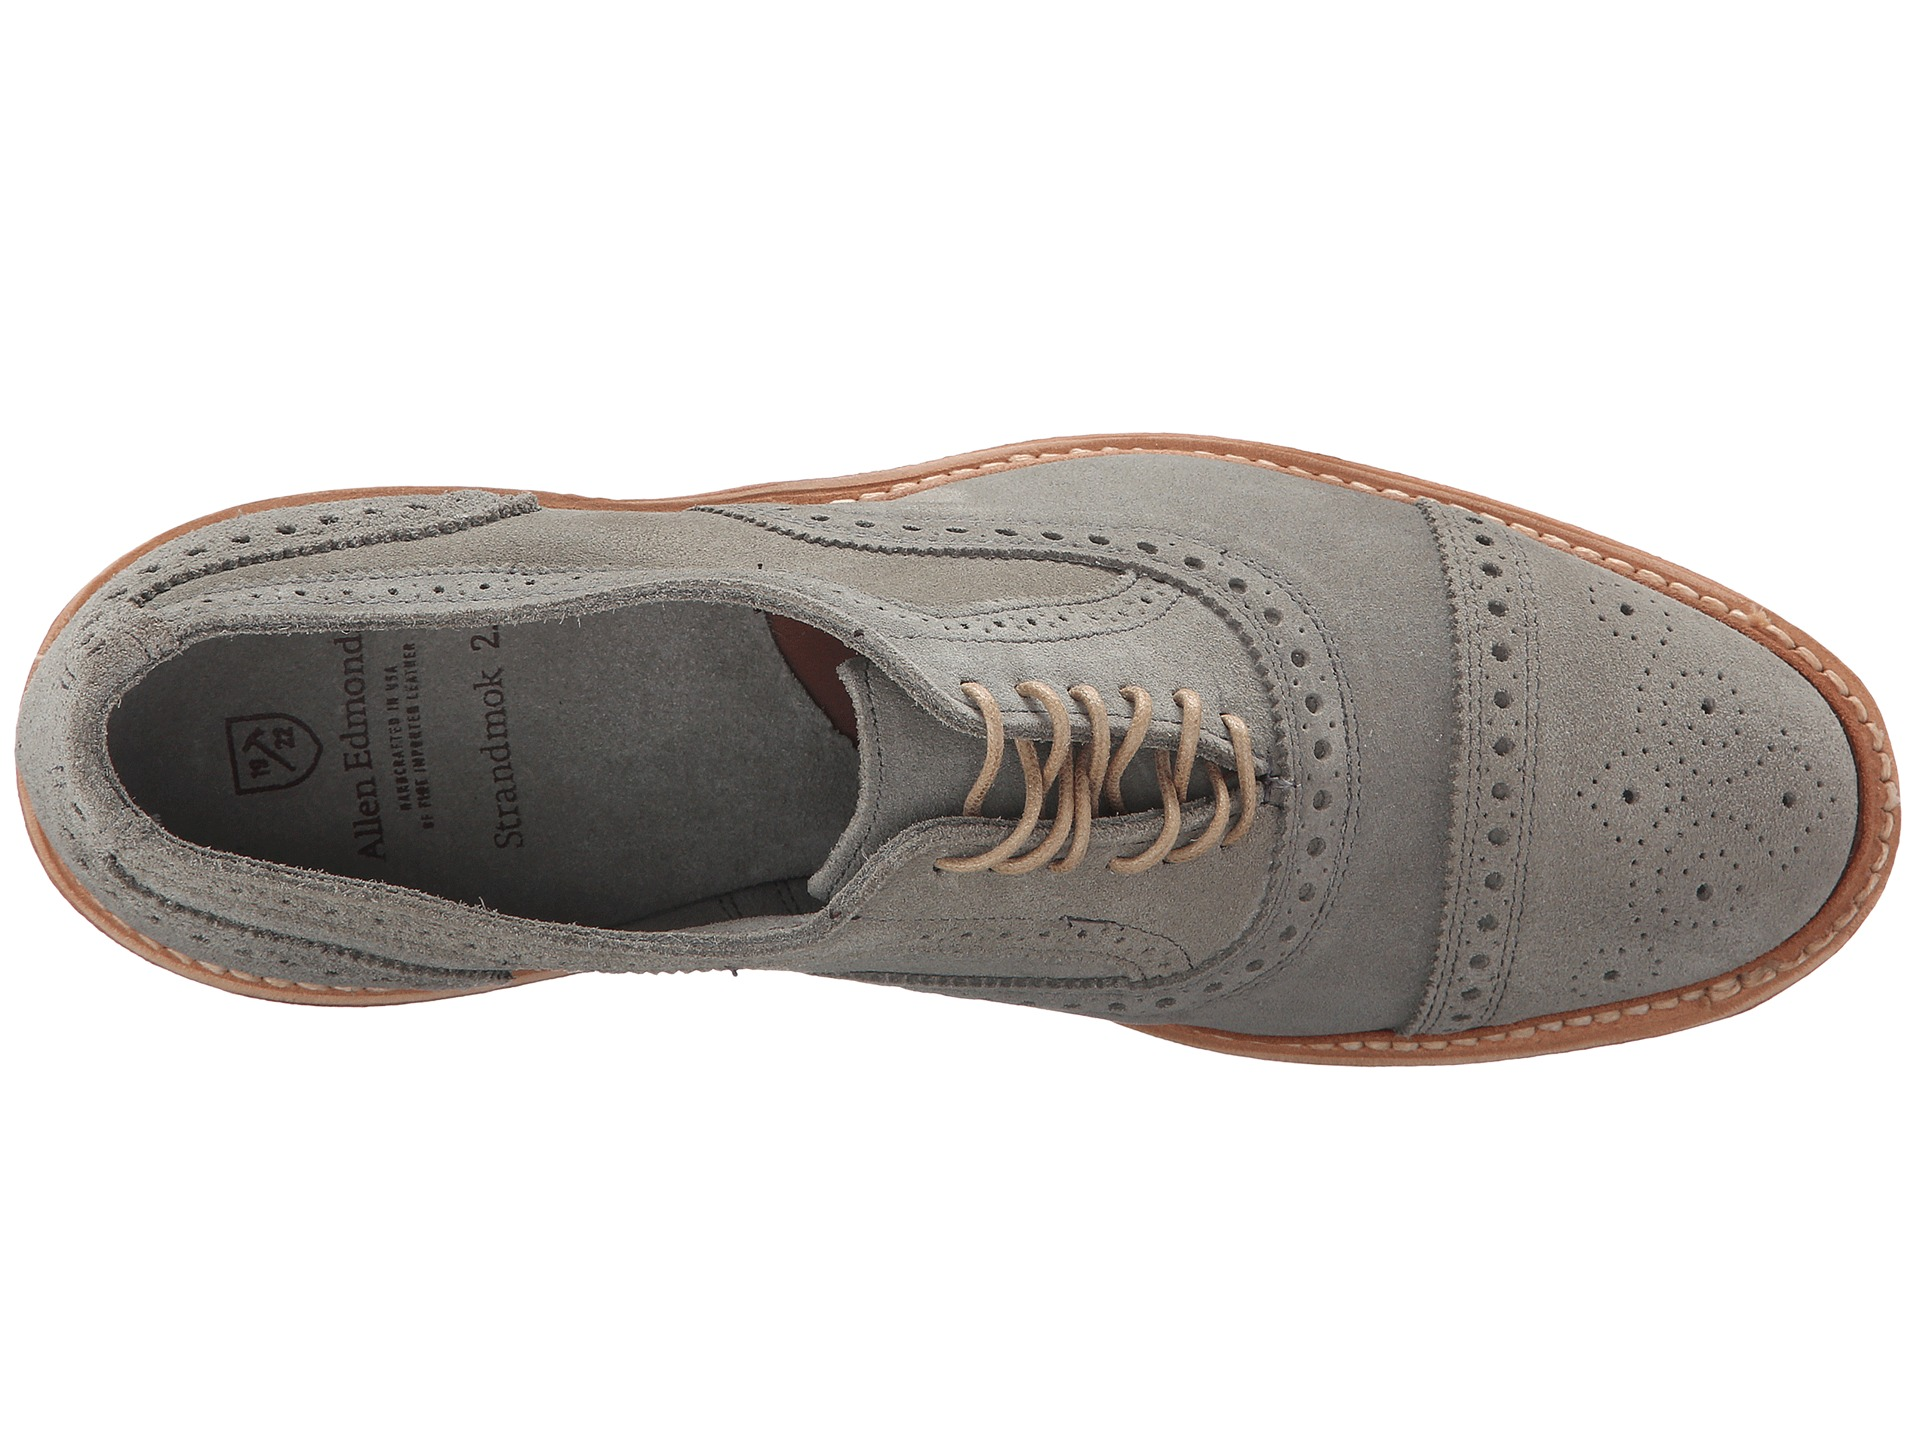 Oxford Sneakers Mens Images Suede Shoes Ideas